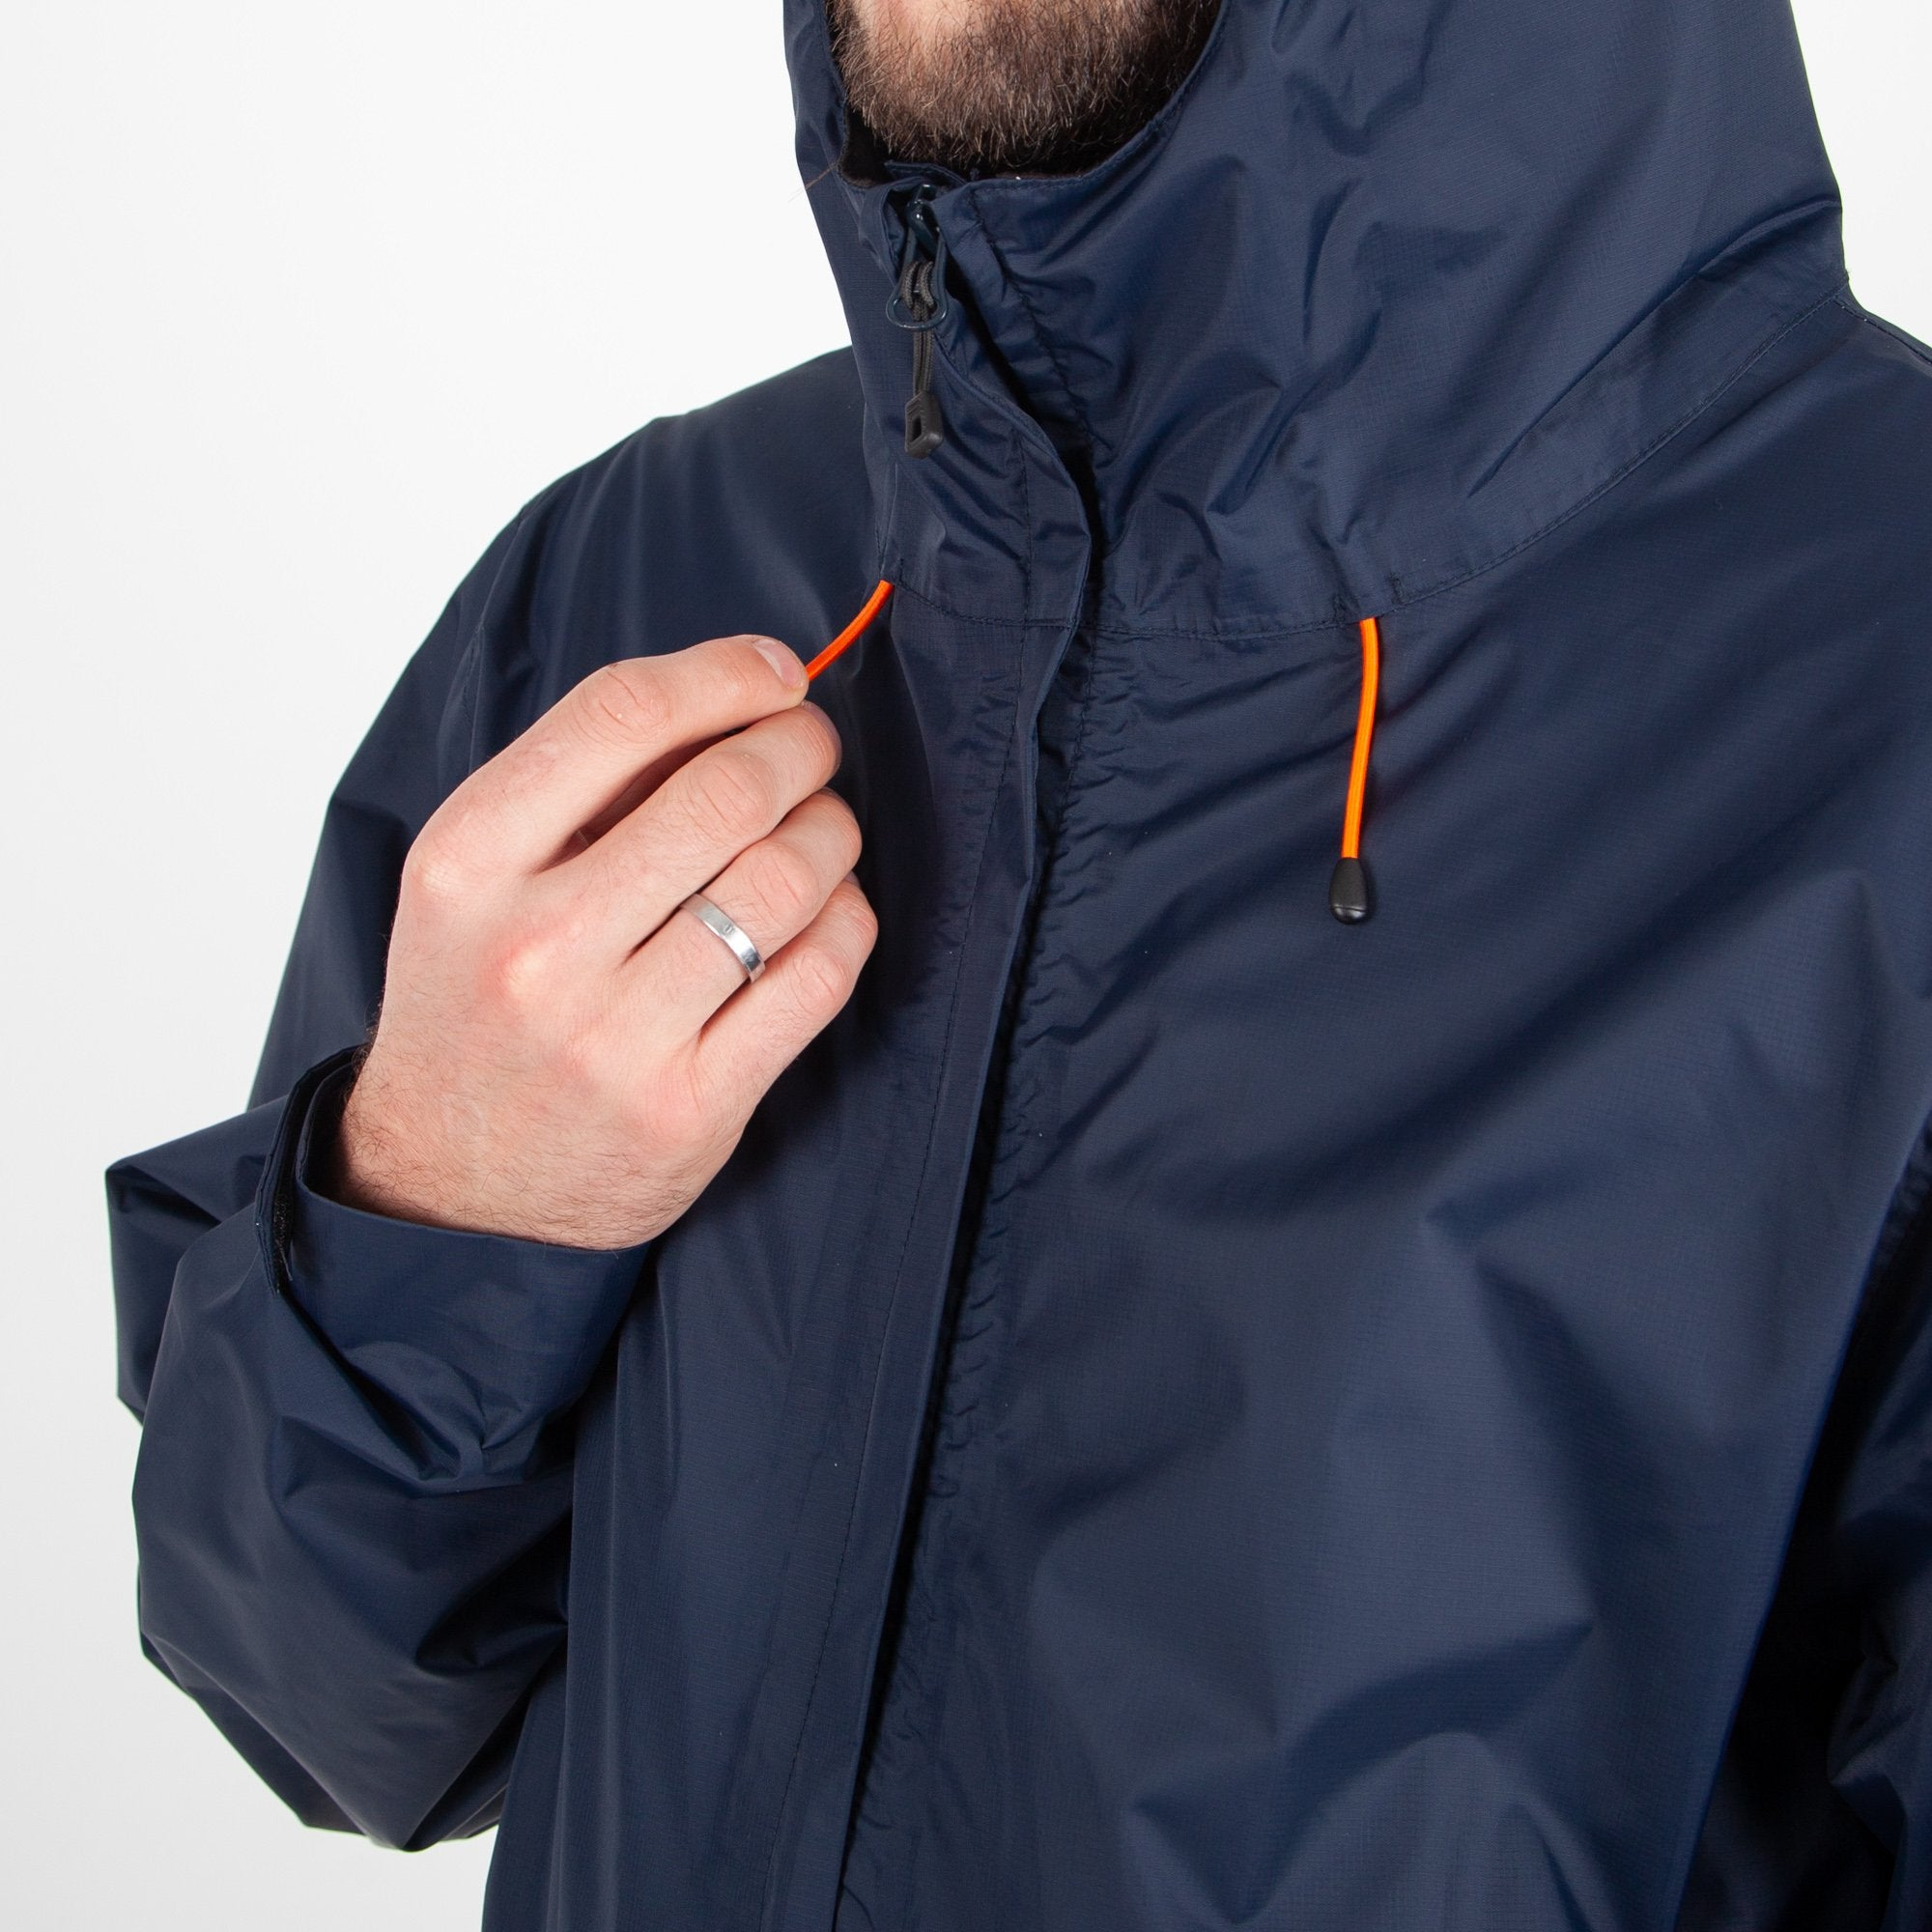 Norcal Waterproof Jacket - Navy image 4